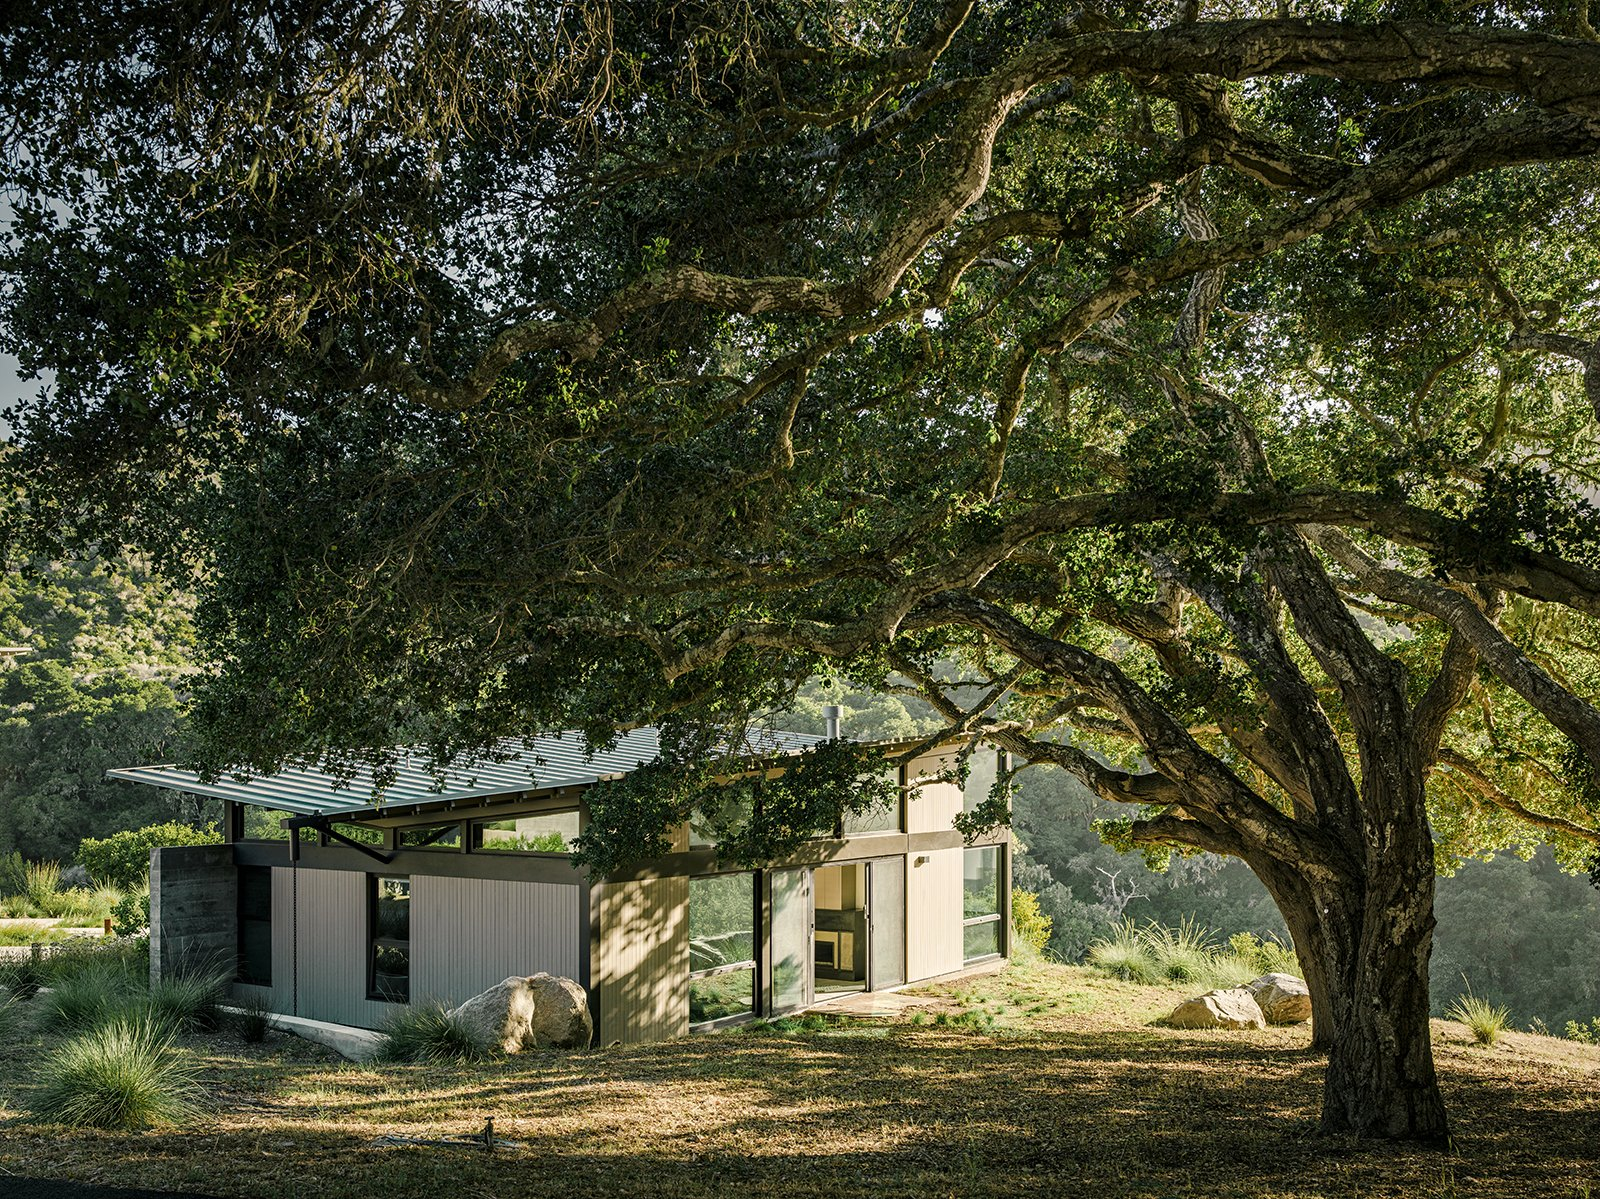 """The bedroom pavilion is mostly hidden, thanks to a massive native California oak—part of a grove. """"That's the good thing about oaks—they keep their leaves in the winter, so you don't have one view in the summer and another in the winter,"""" Suzanne says. Tagged: Exterior, Metal Roof Material, Metal Siding Material, House, Butterfly RoofLine, and Concrete Siding Material.  Photo 16 of 21 in I Love Modern Architecture from Sustainable Retirement Home in Tune with California Landscape"""